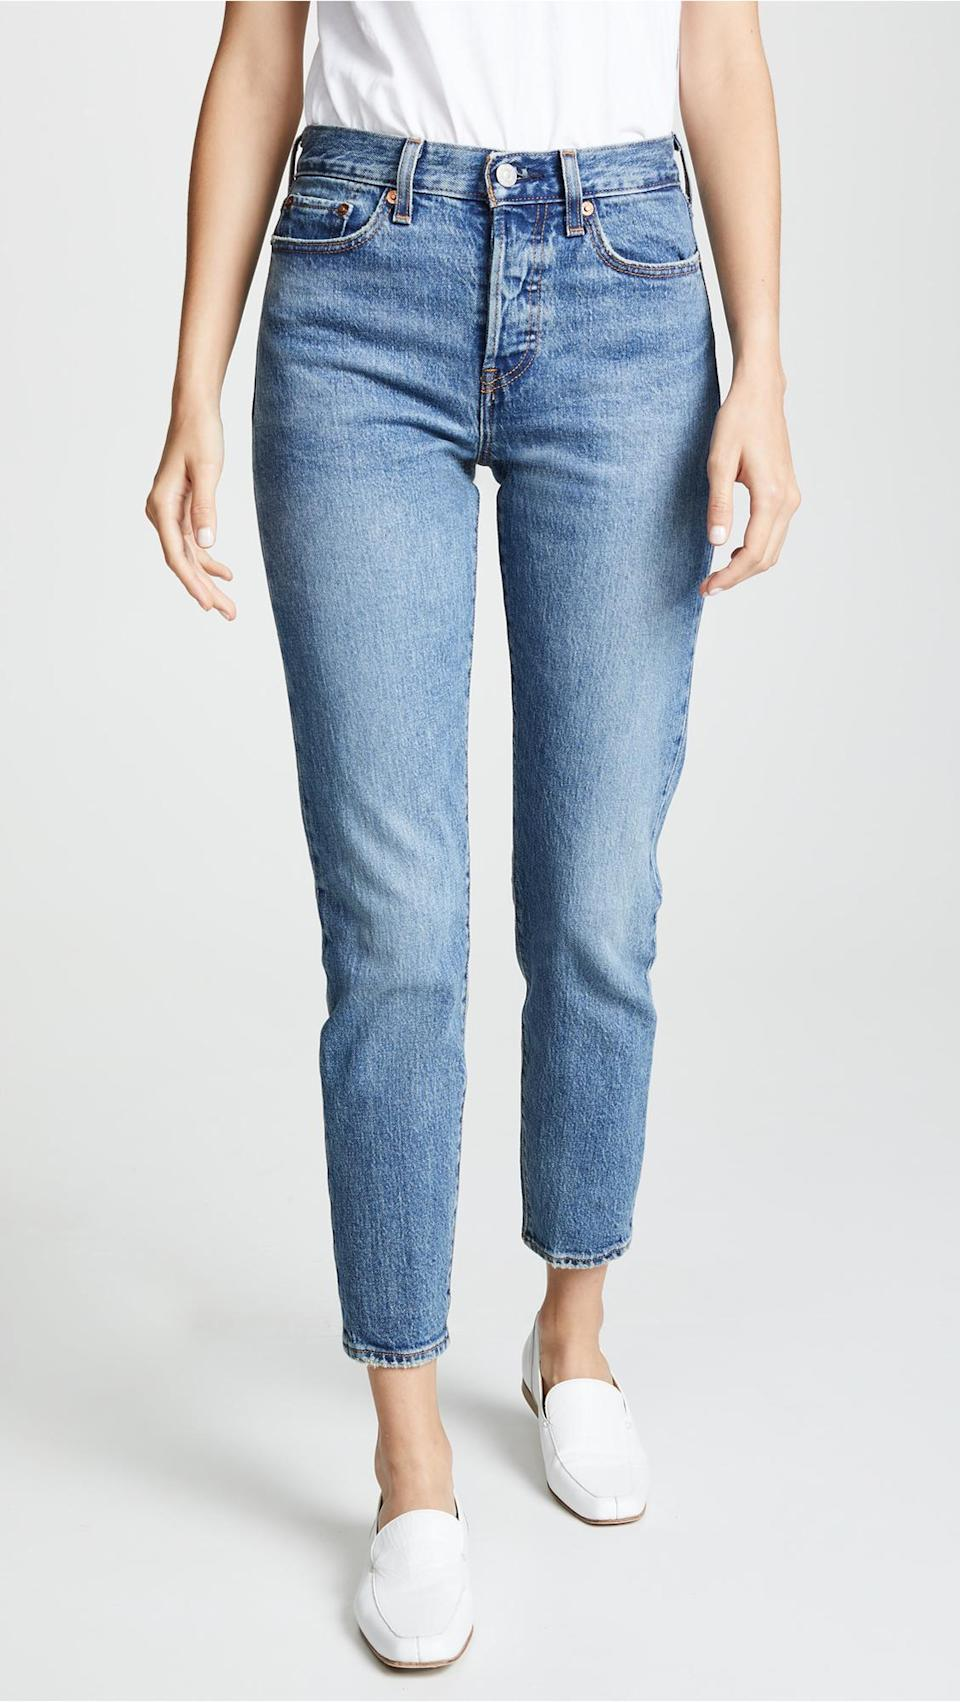 Levi's Wedgie Icon Jeans.